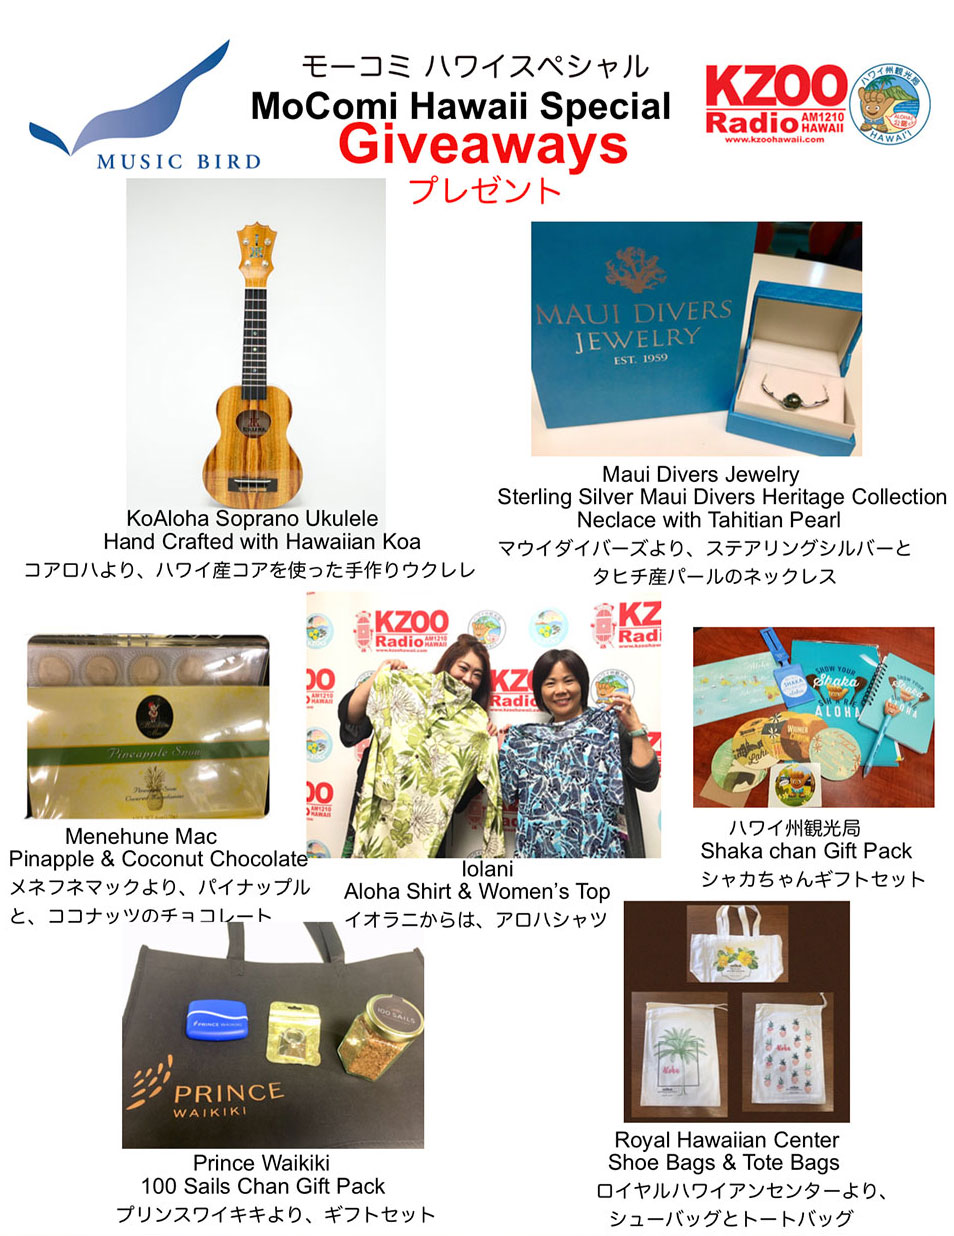 Music Bird MoComi in Hawaii Hawaii Prize Giveaways!